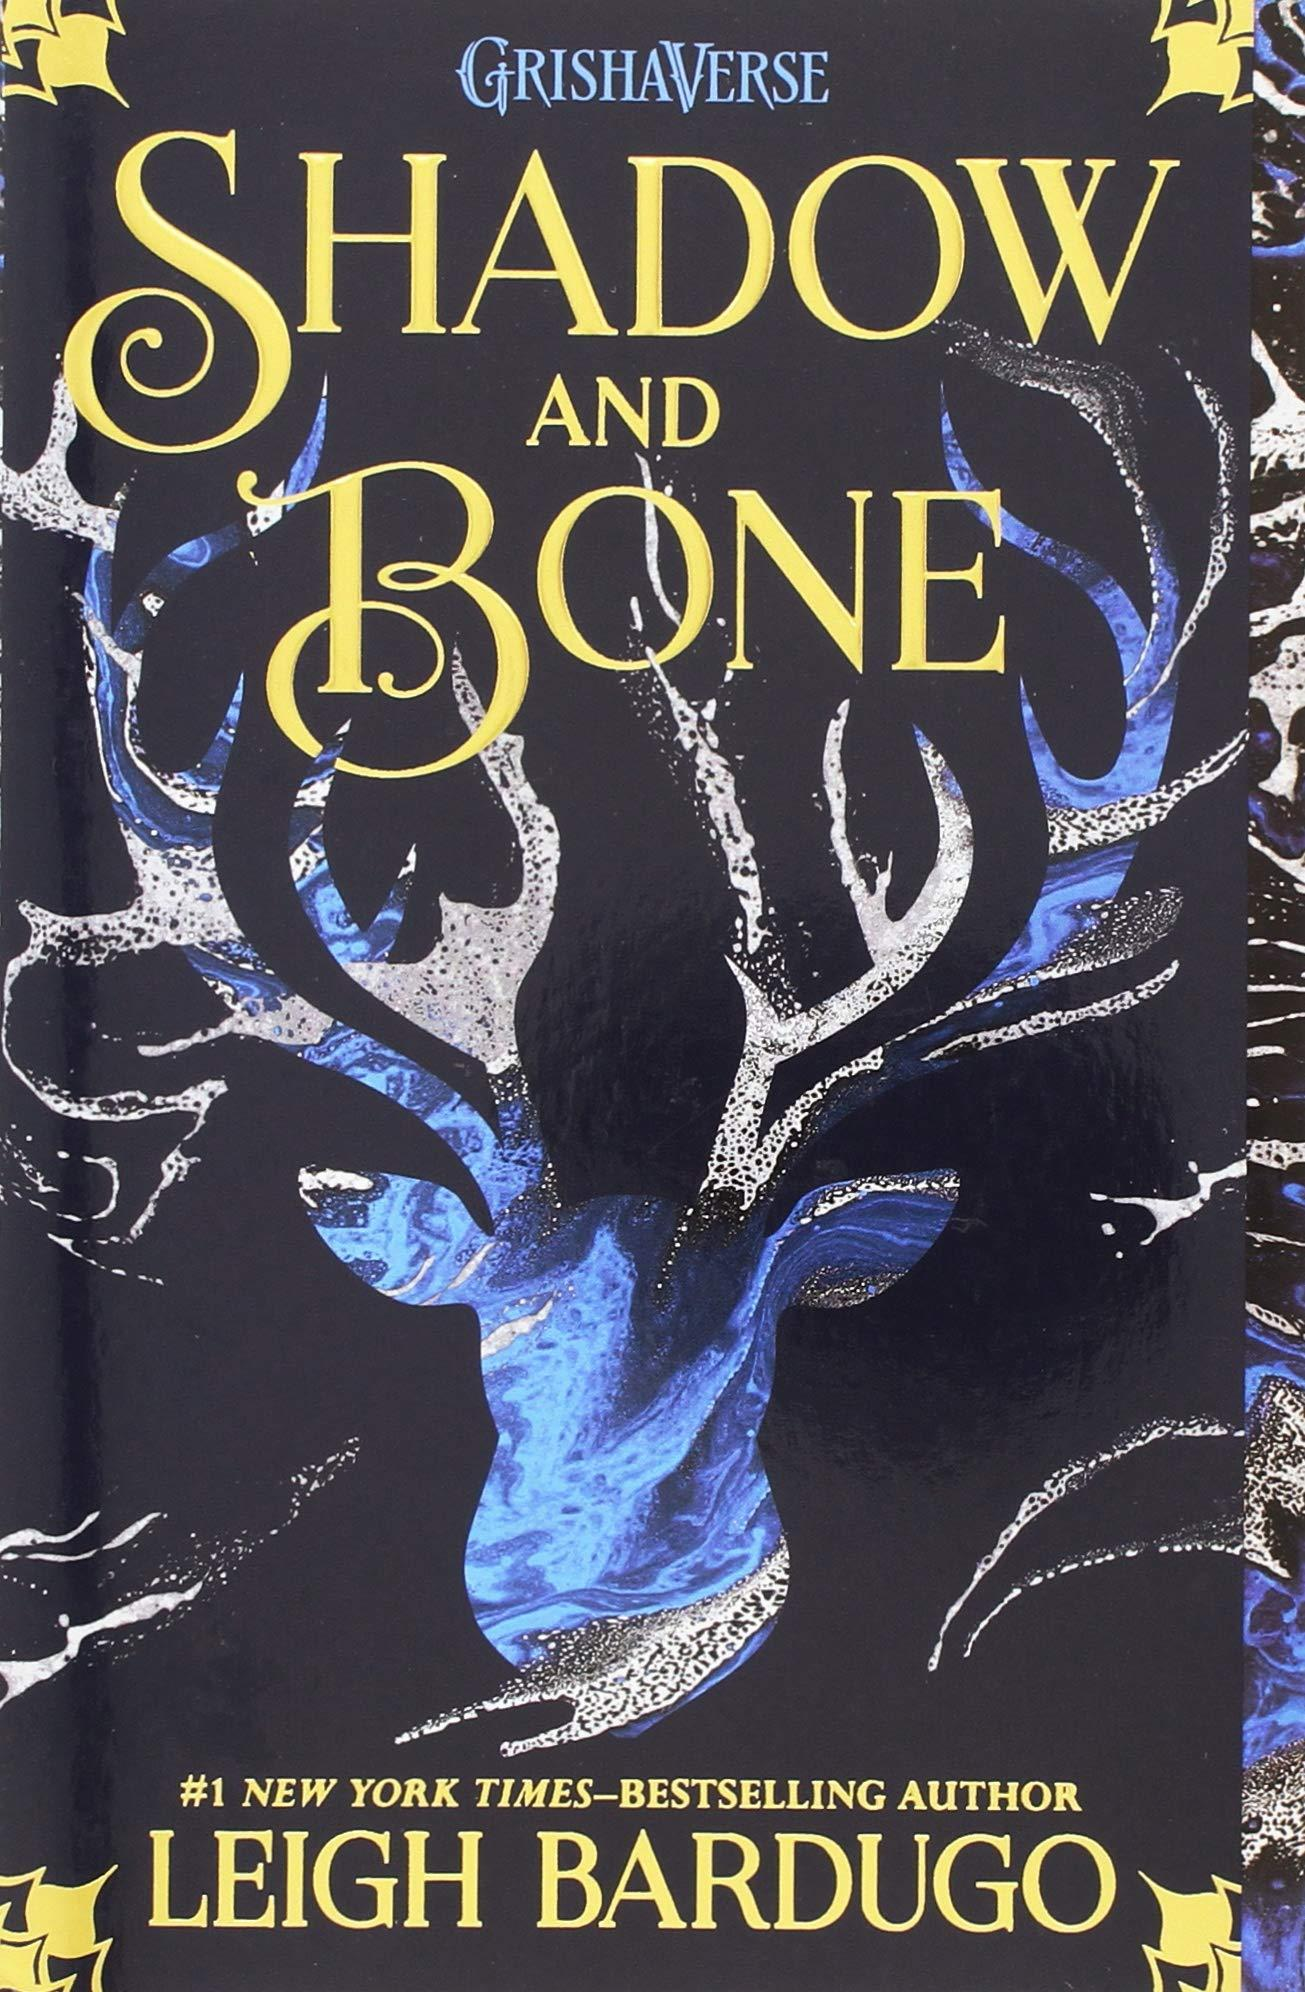 1-shadow-and-bone-book-1570047102197.jpg